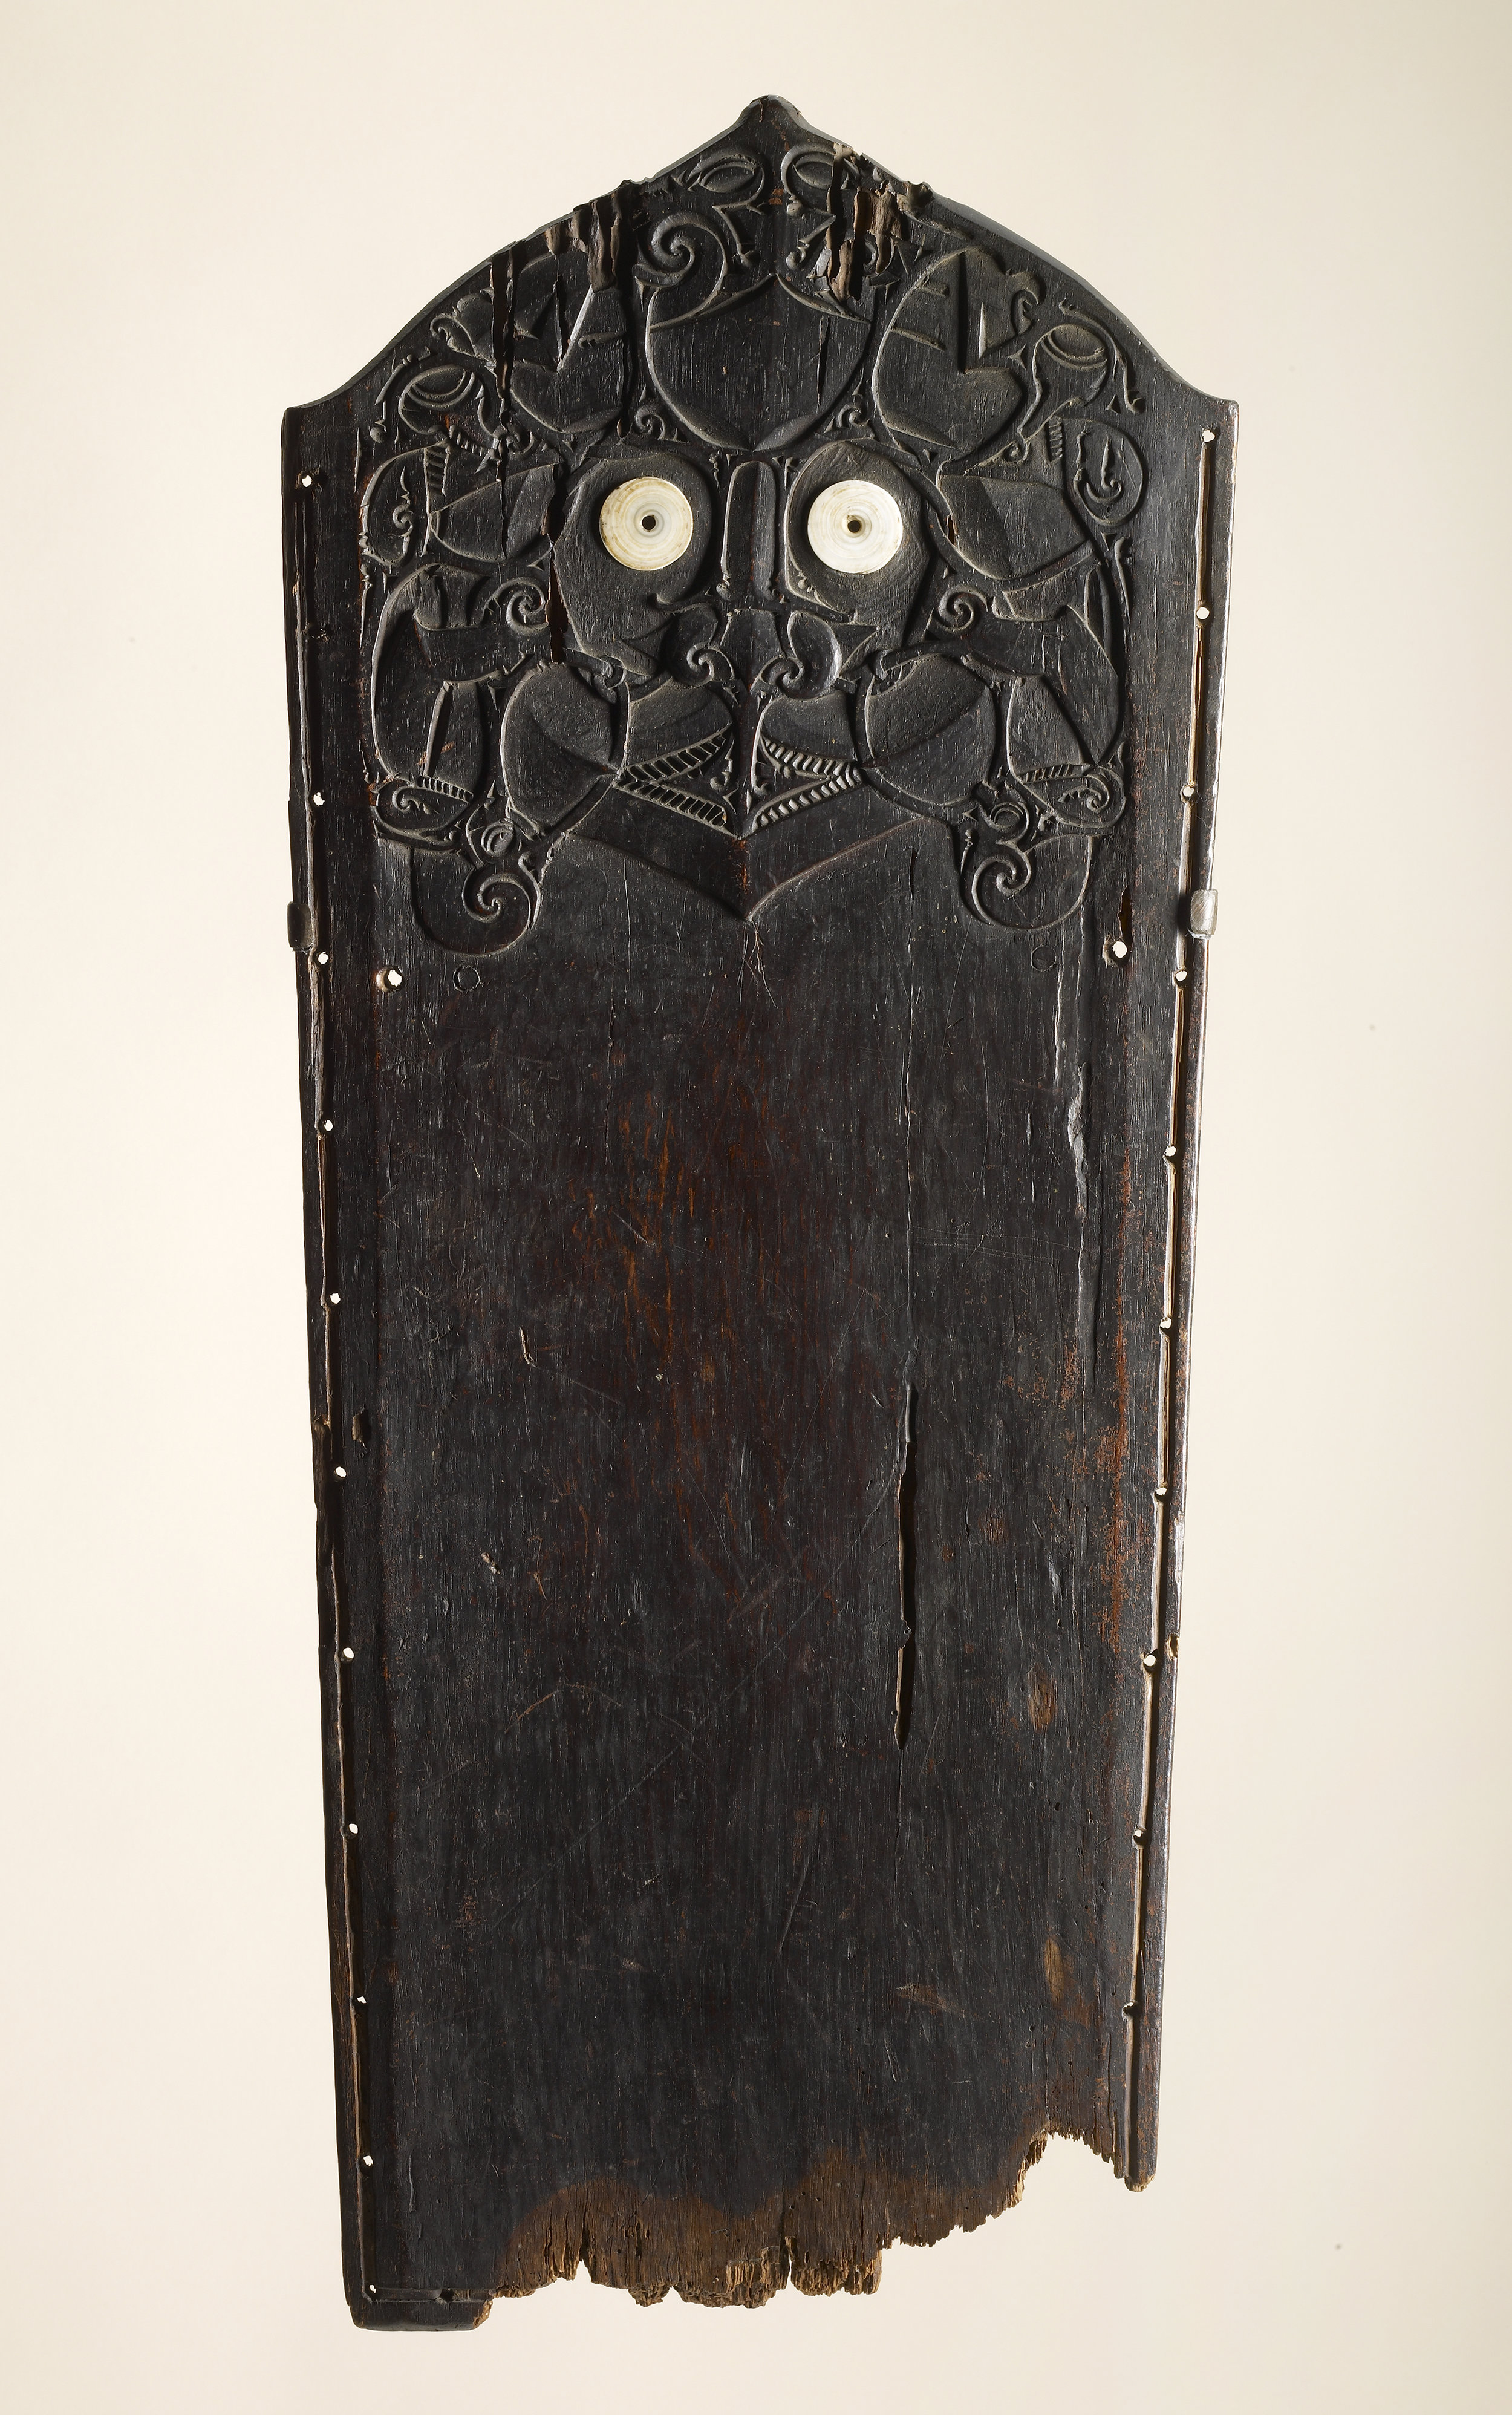 Women's Workboard | Borneo | 19th - 20th Century | Inv #: 2006.127.12 © de Young Museum FAMSF